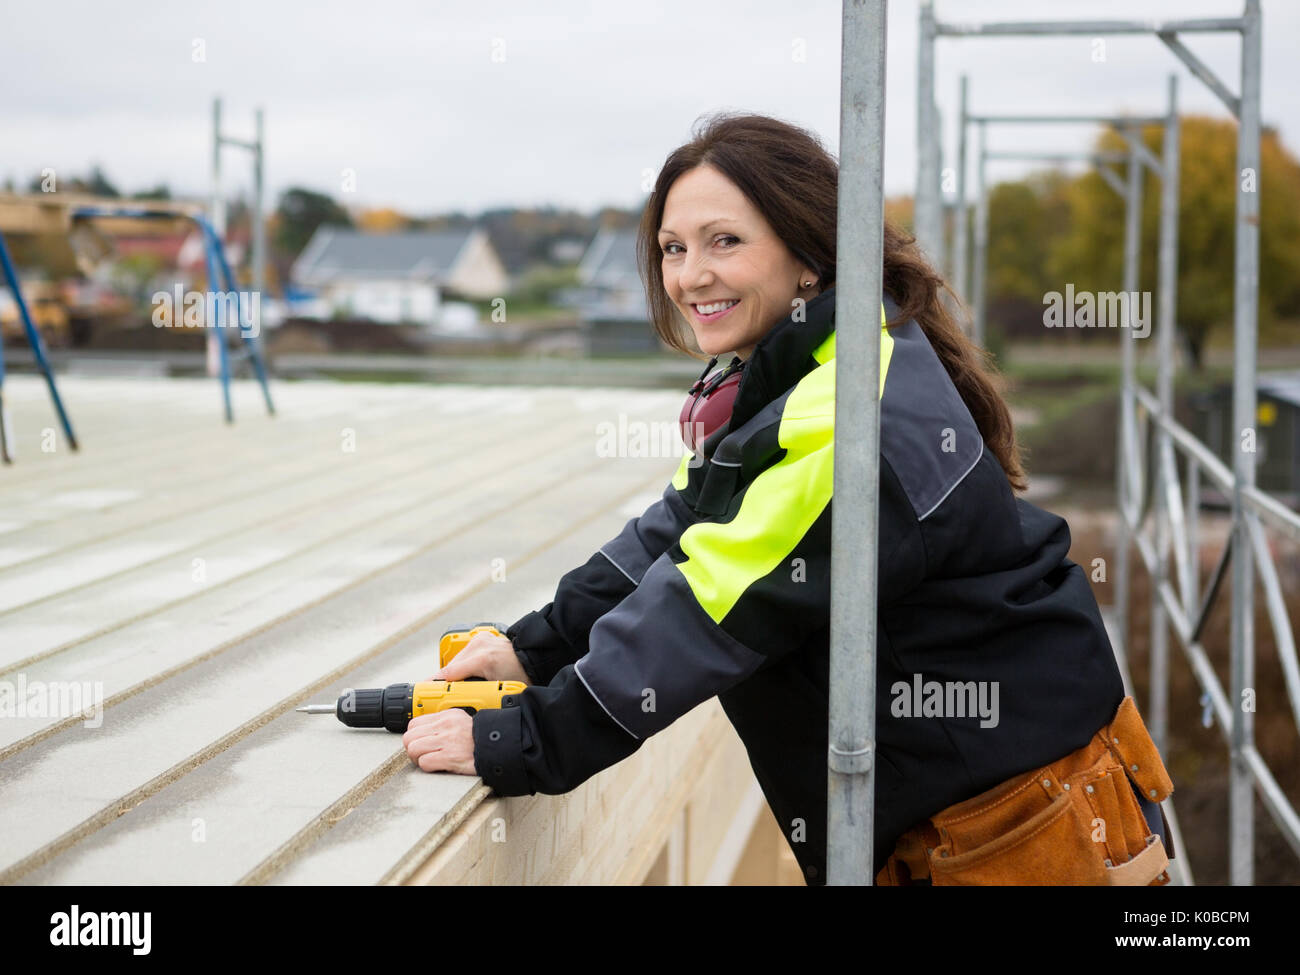 Female Carpenter Smiling While Holding Drill Machine At Roof - Stock Image